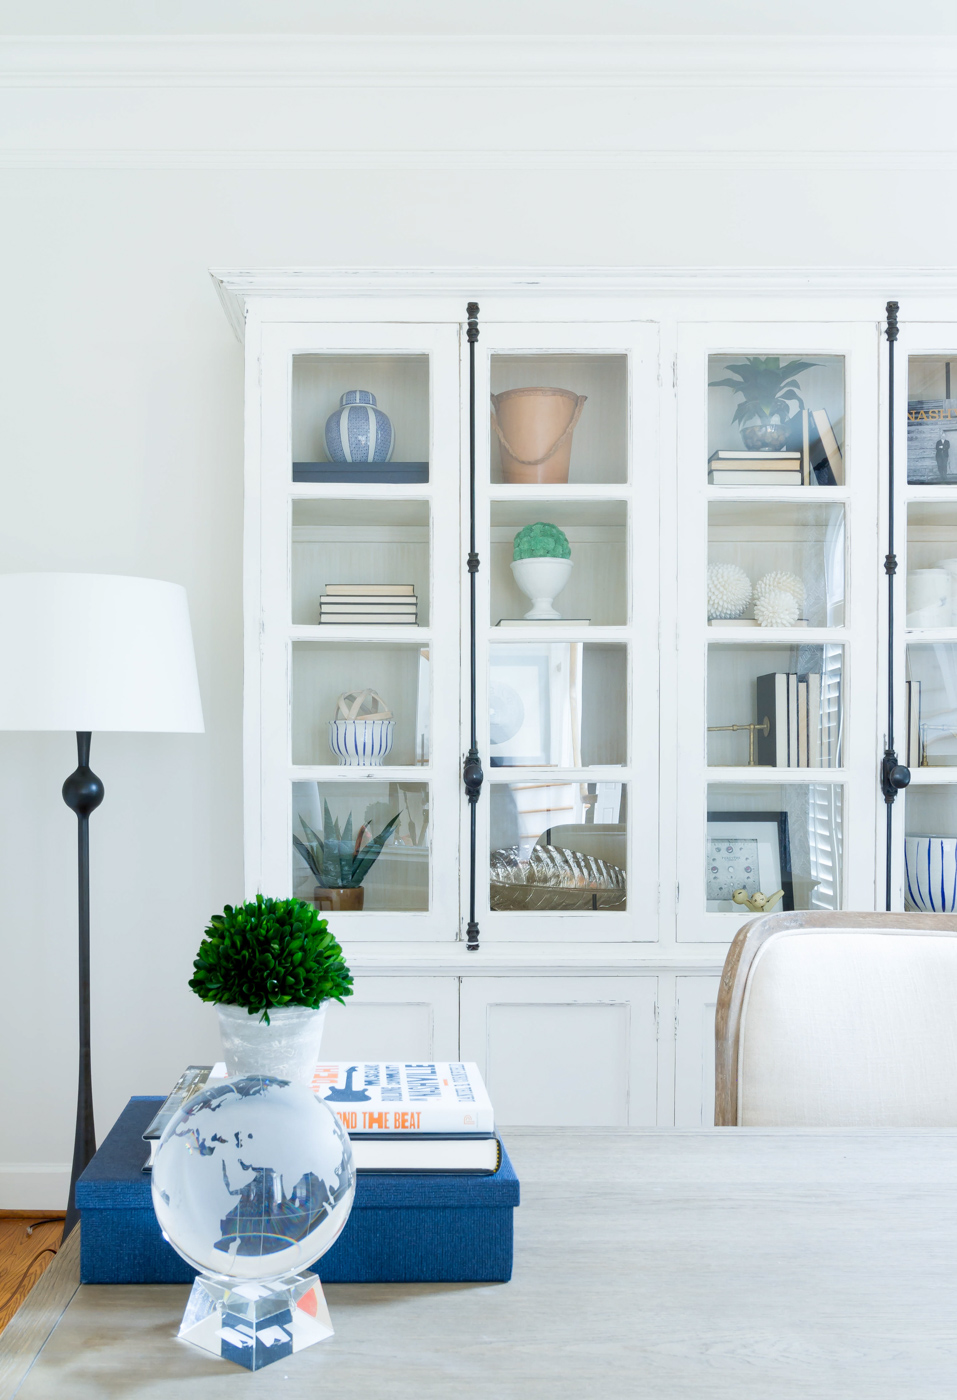 Eclectic Home Tour - love this white hutch to display favorite accessories in the dining room #diningroom #diningroomfurniture #diningroomdecor